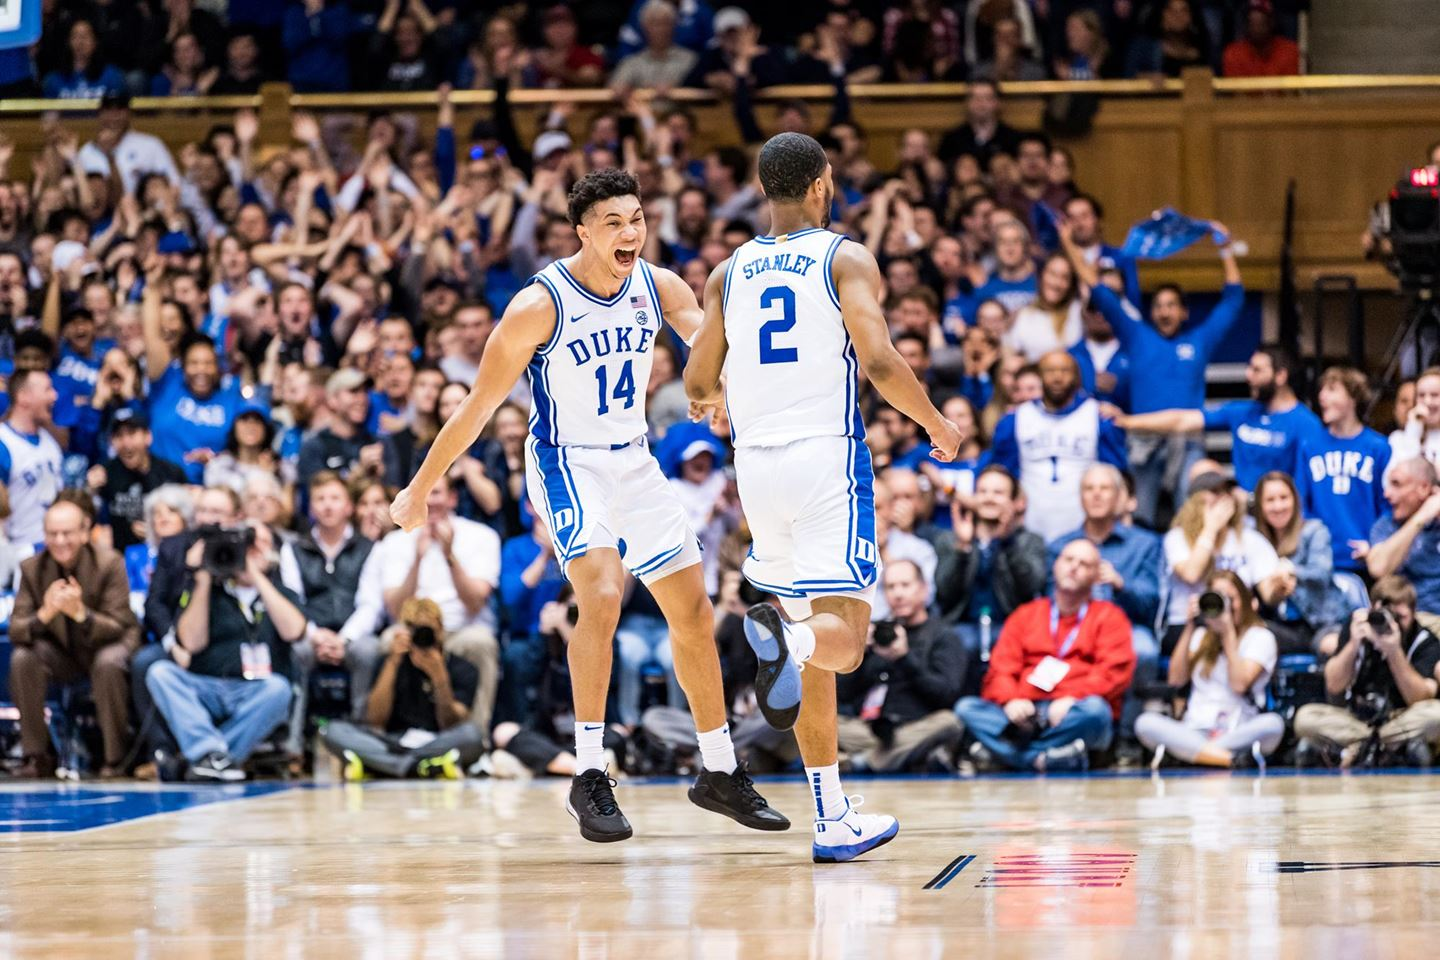 Duke takes advantage of second Pack game